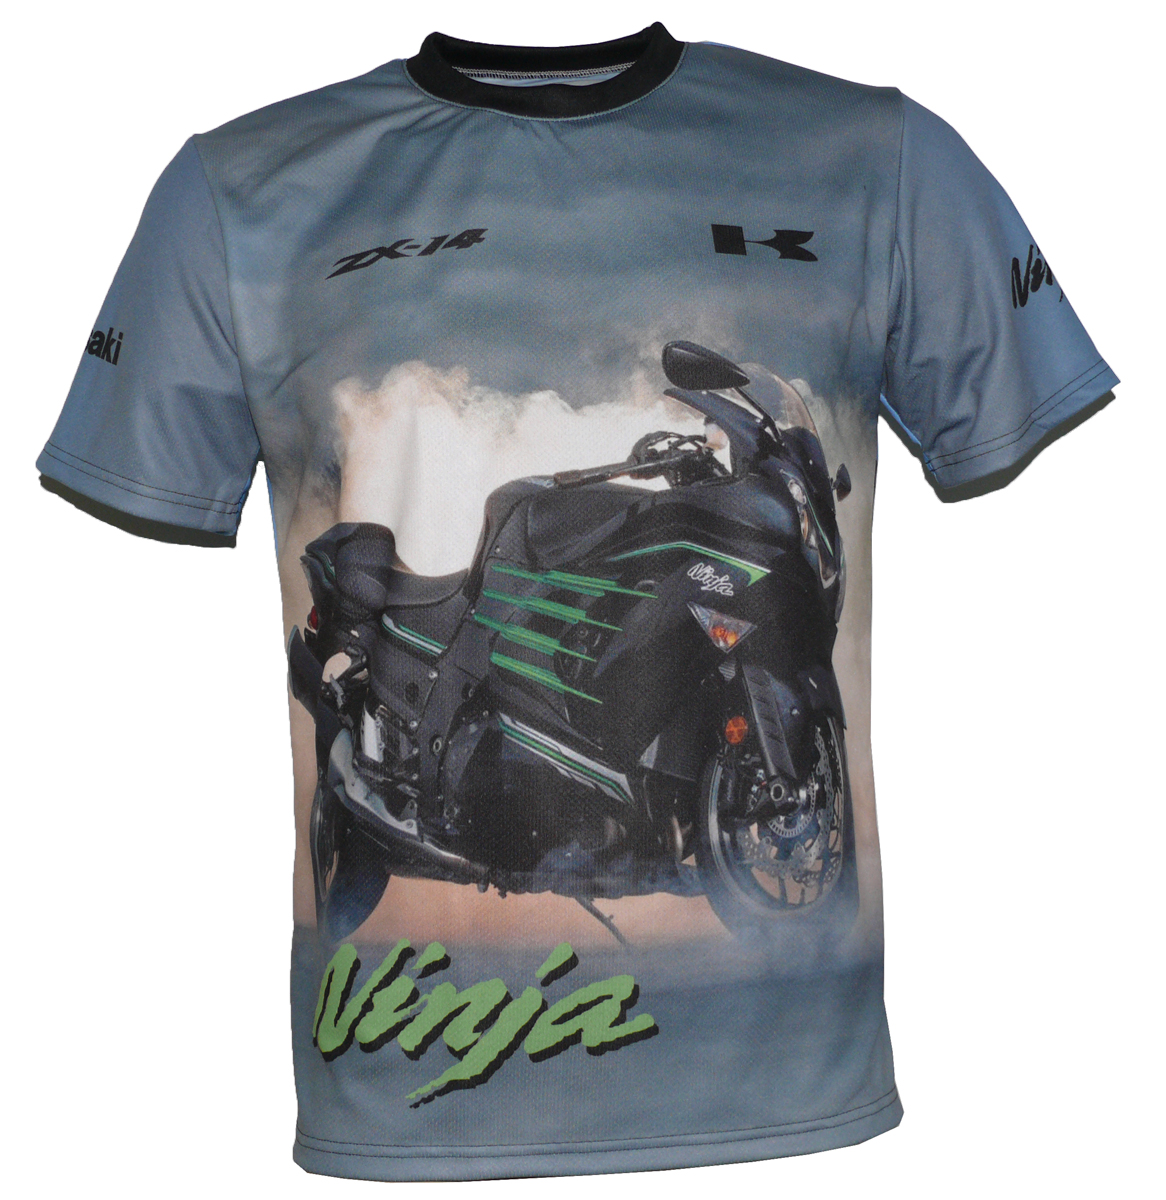 Kawasaki Zx 14r T Shirt With Logo And All Over Printed Picture T